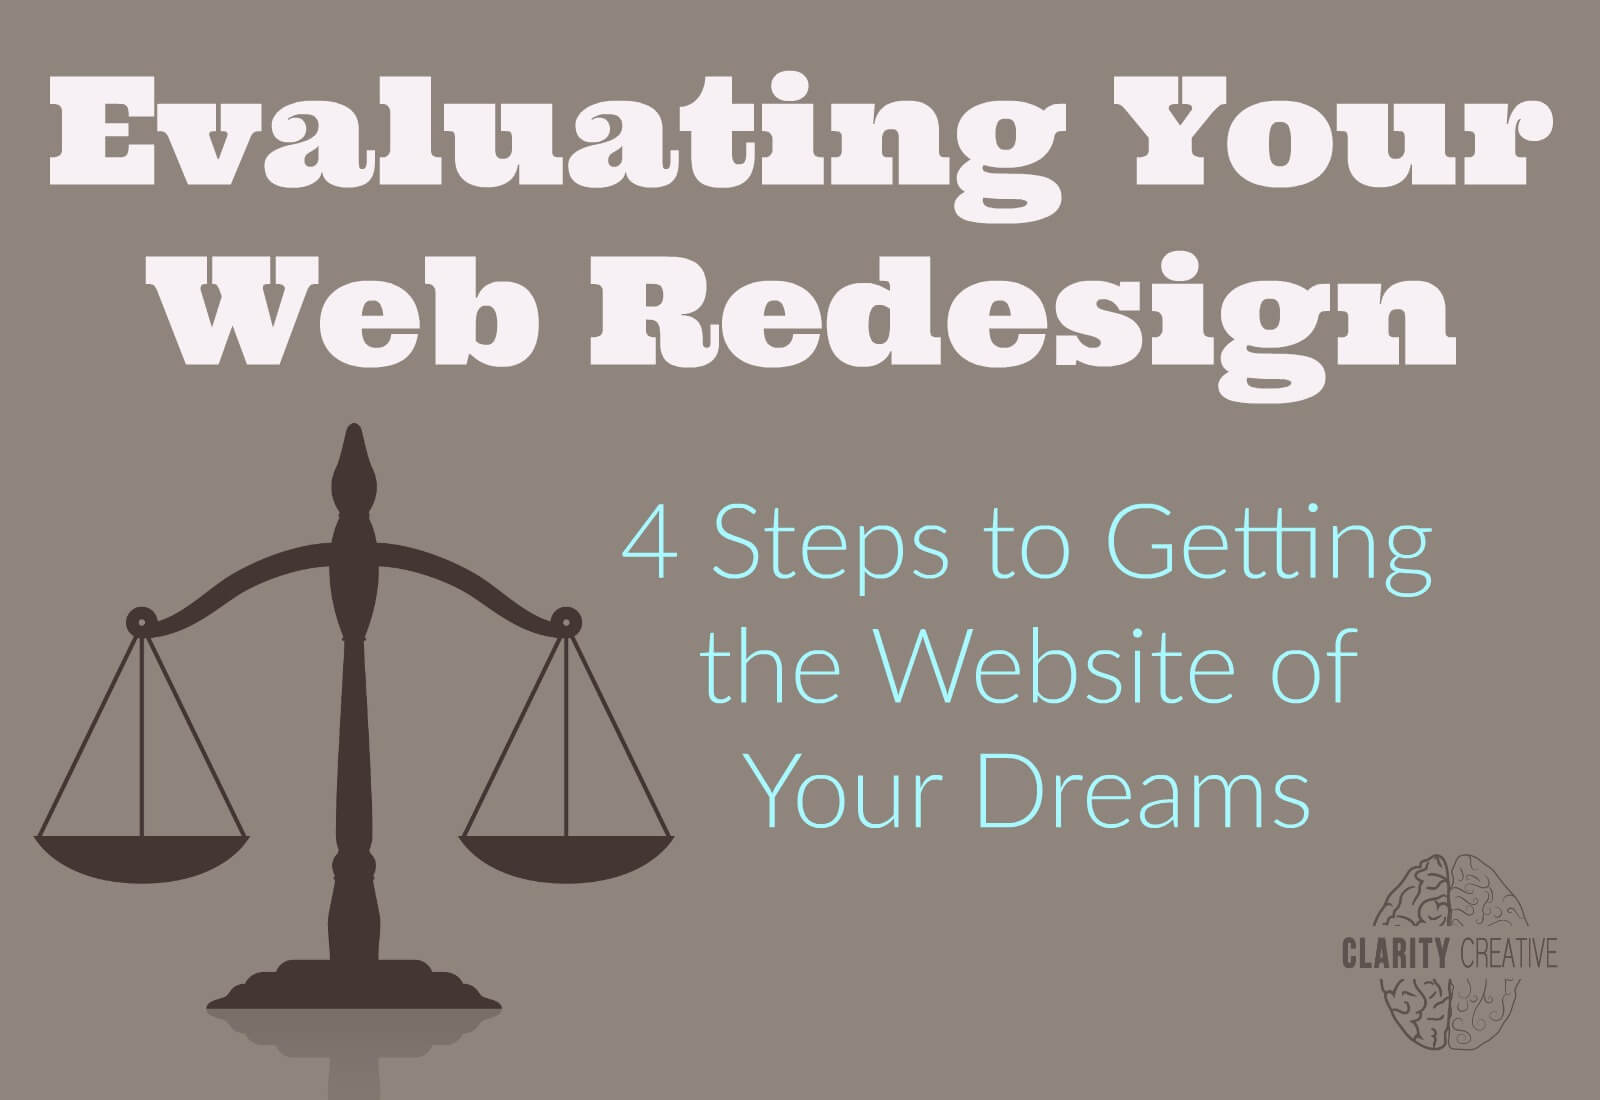 Evaluating Your Web Redesign: 4 Steps to Getting the Website of Your Dreams